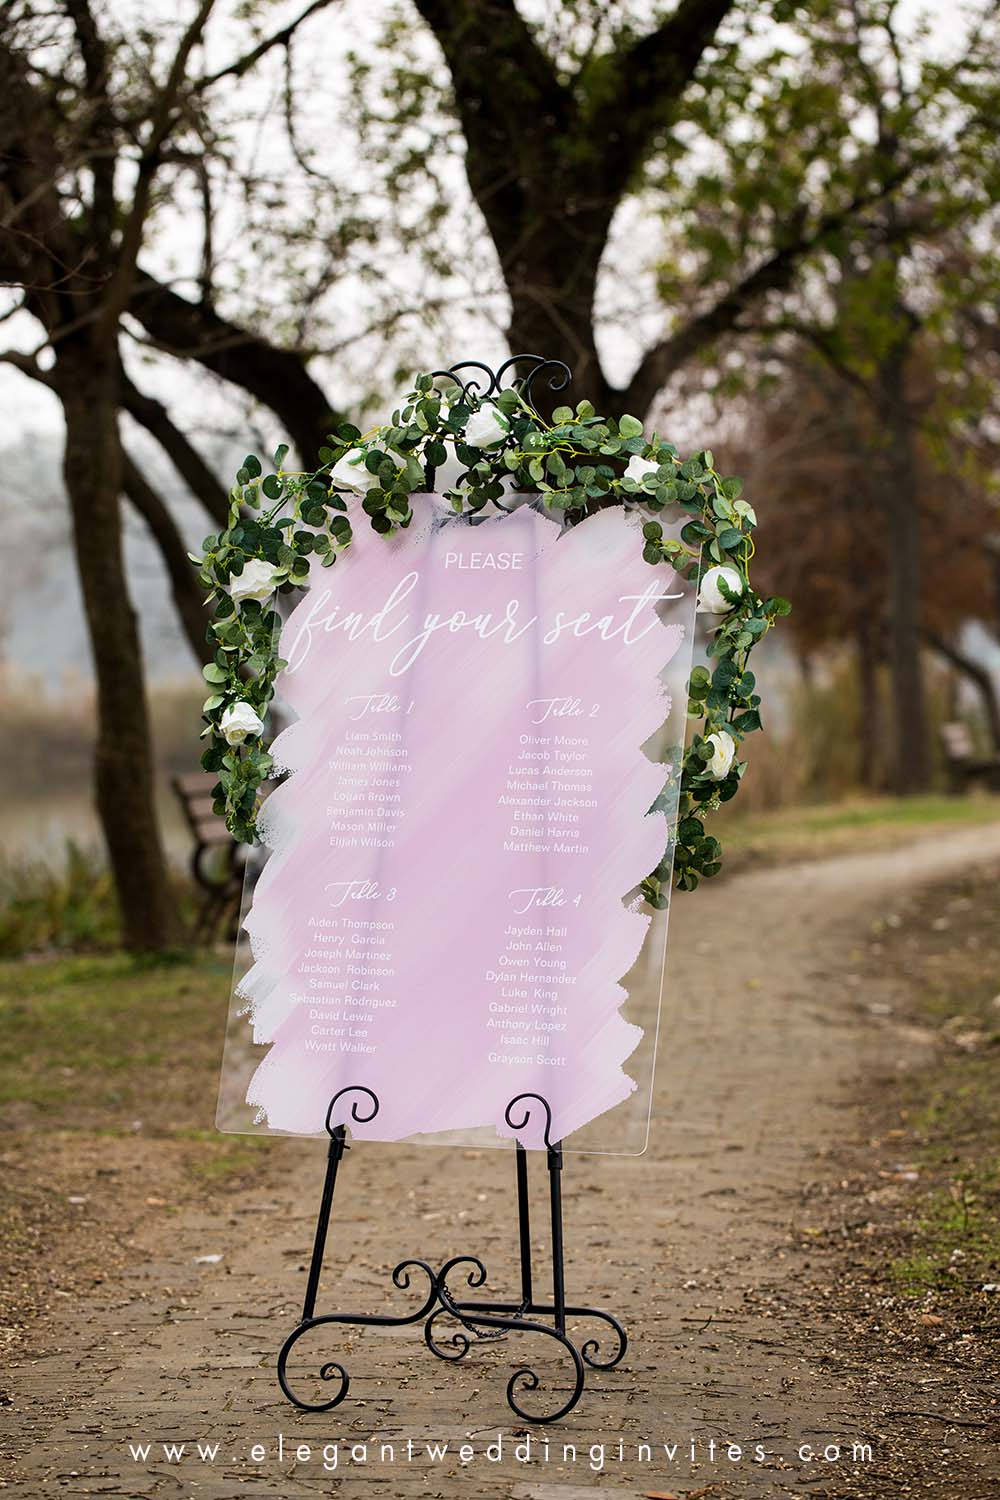 acrylic wedding seating chart plan with painted backs for wedding reception